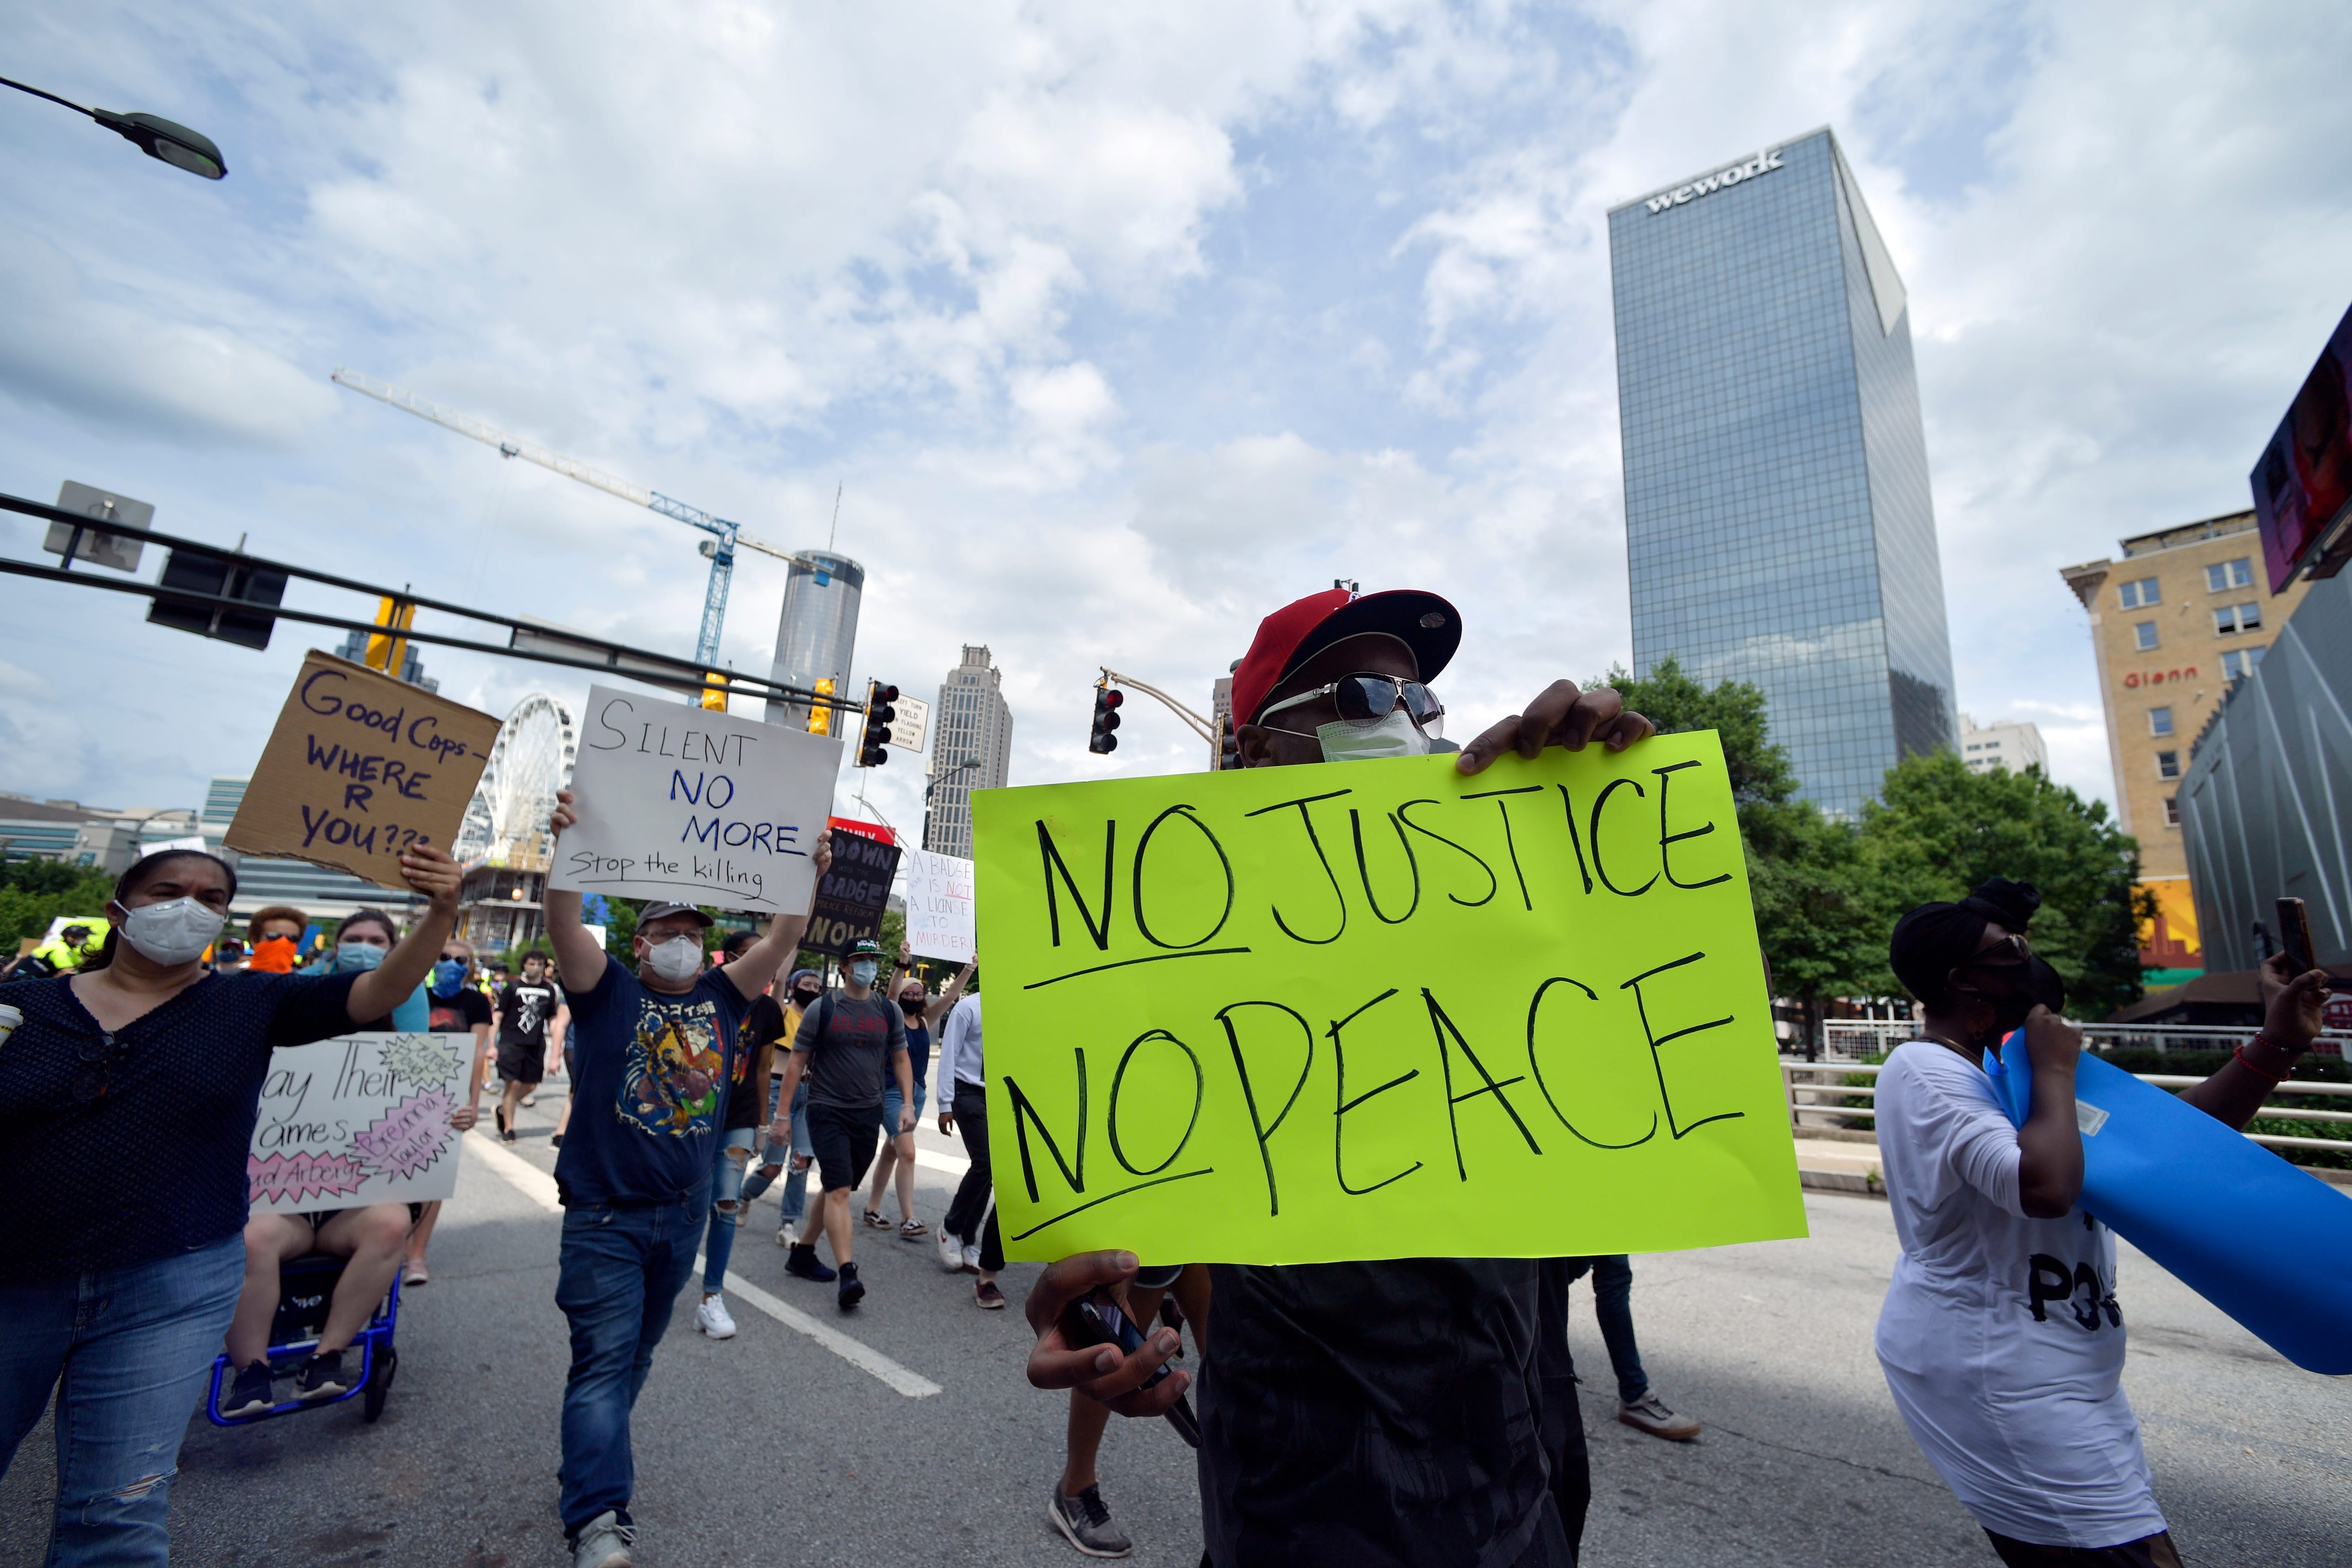 Black history is this country s history : George Floyd protests intensify across US, from Atlanta to Indianapolis to Tennessee